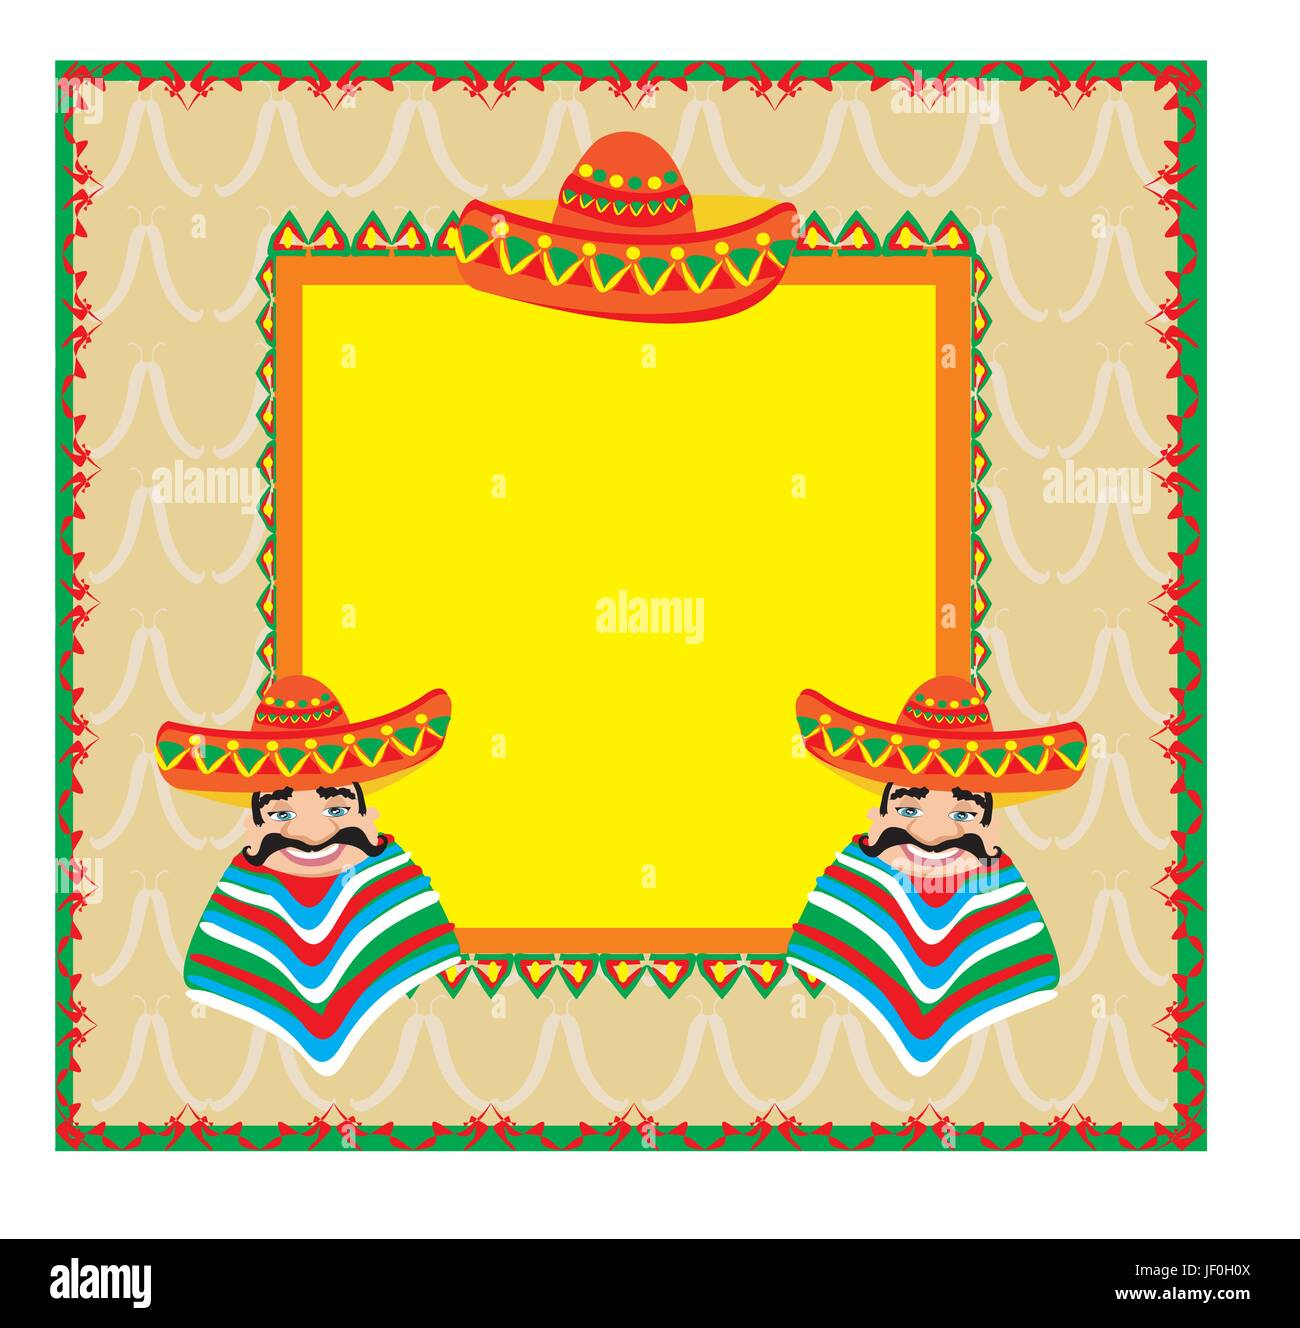 stock vector mexican frame with man in a sombrero - Mexican Frame